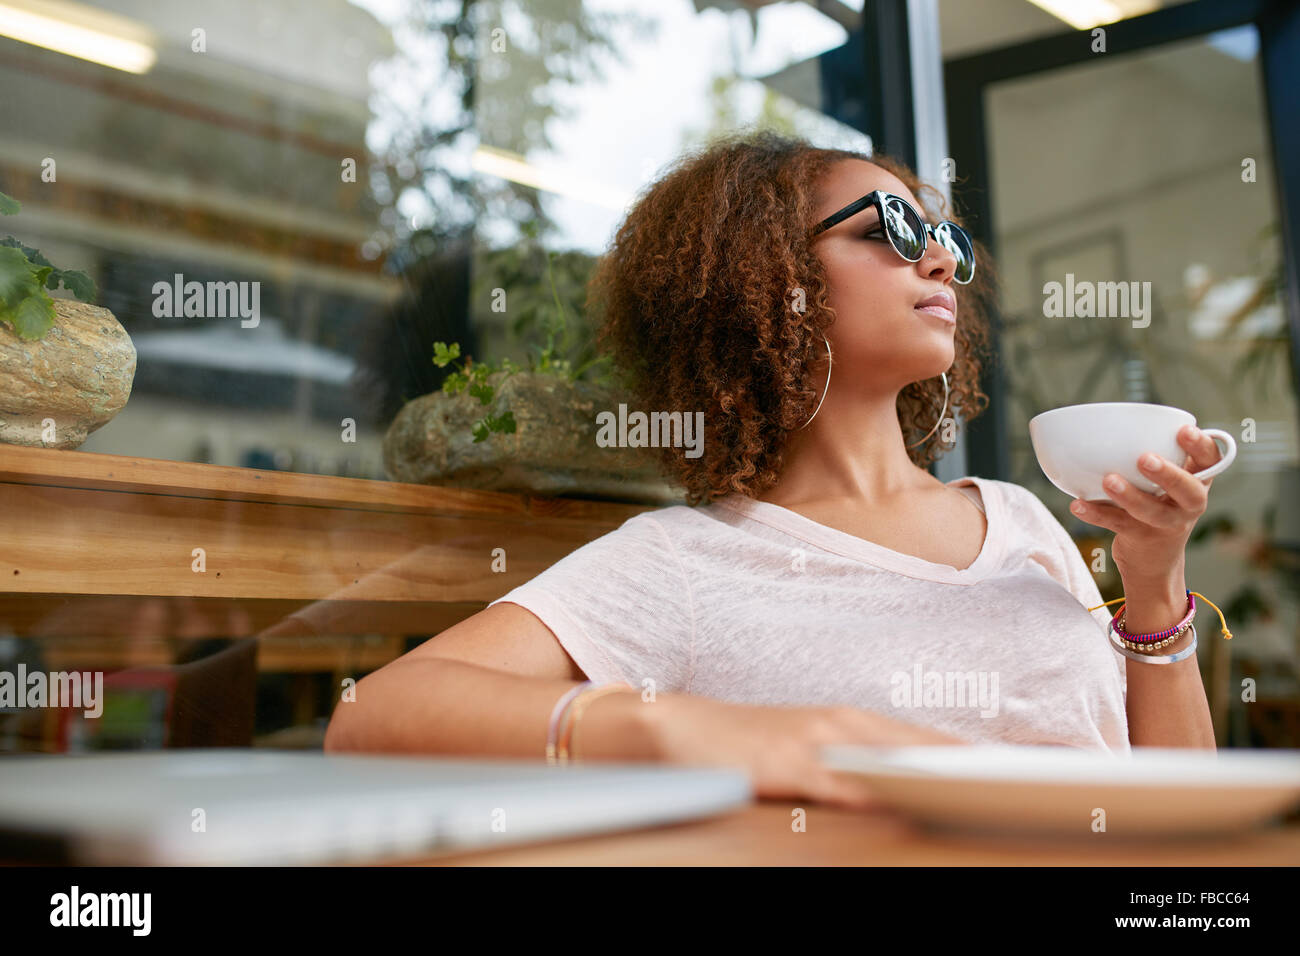 Portrait of attractive young African girl ayant une tasse de café au café. Jeune fille élégante Photo Stock